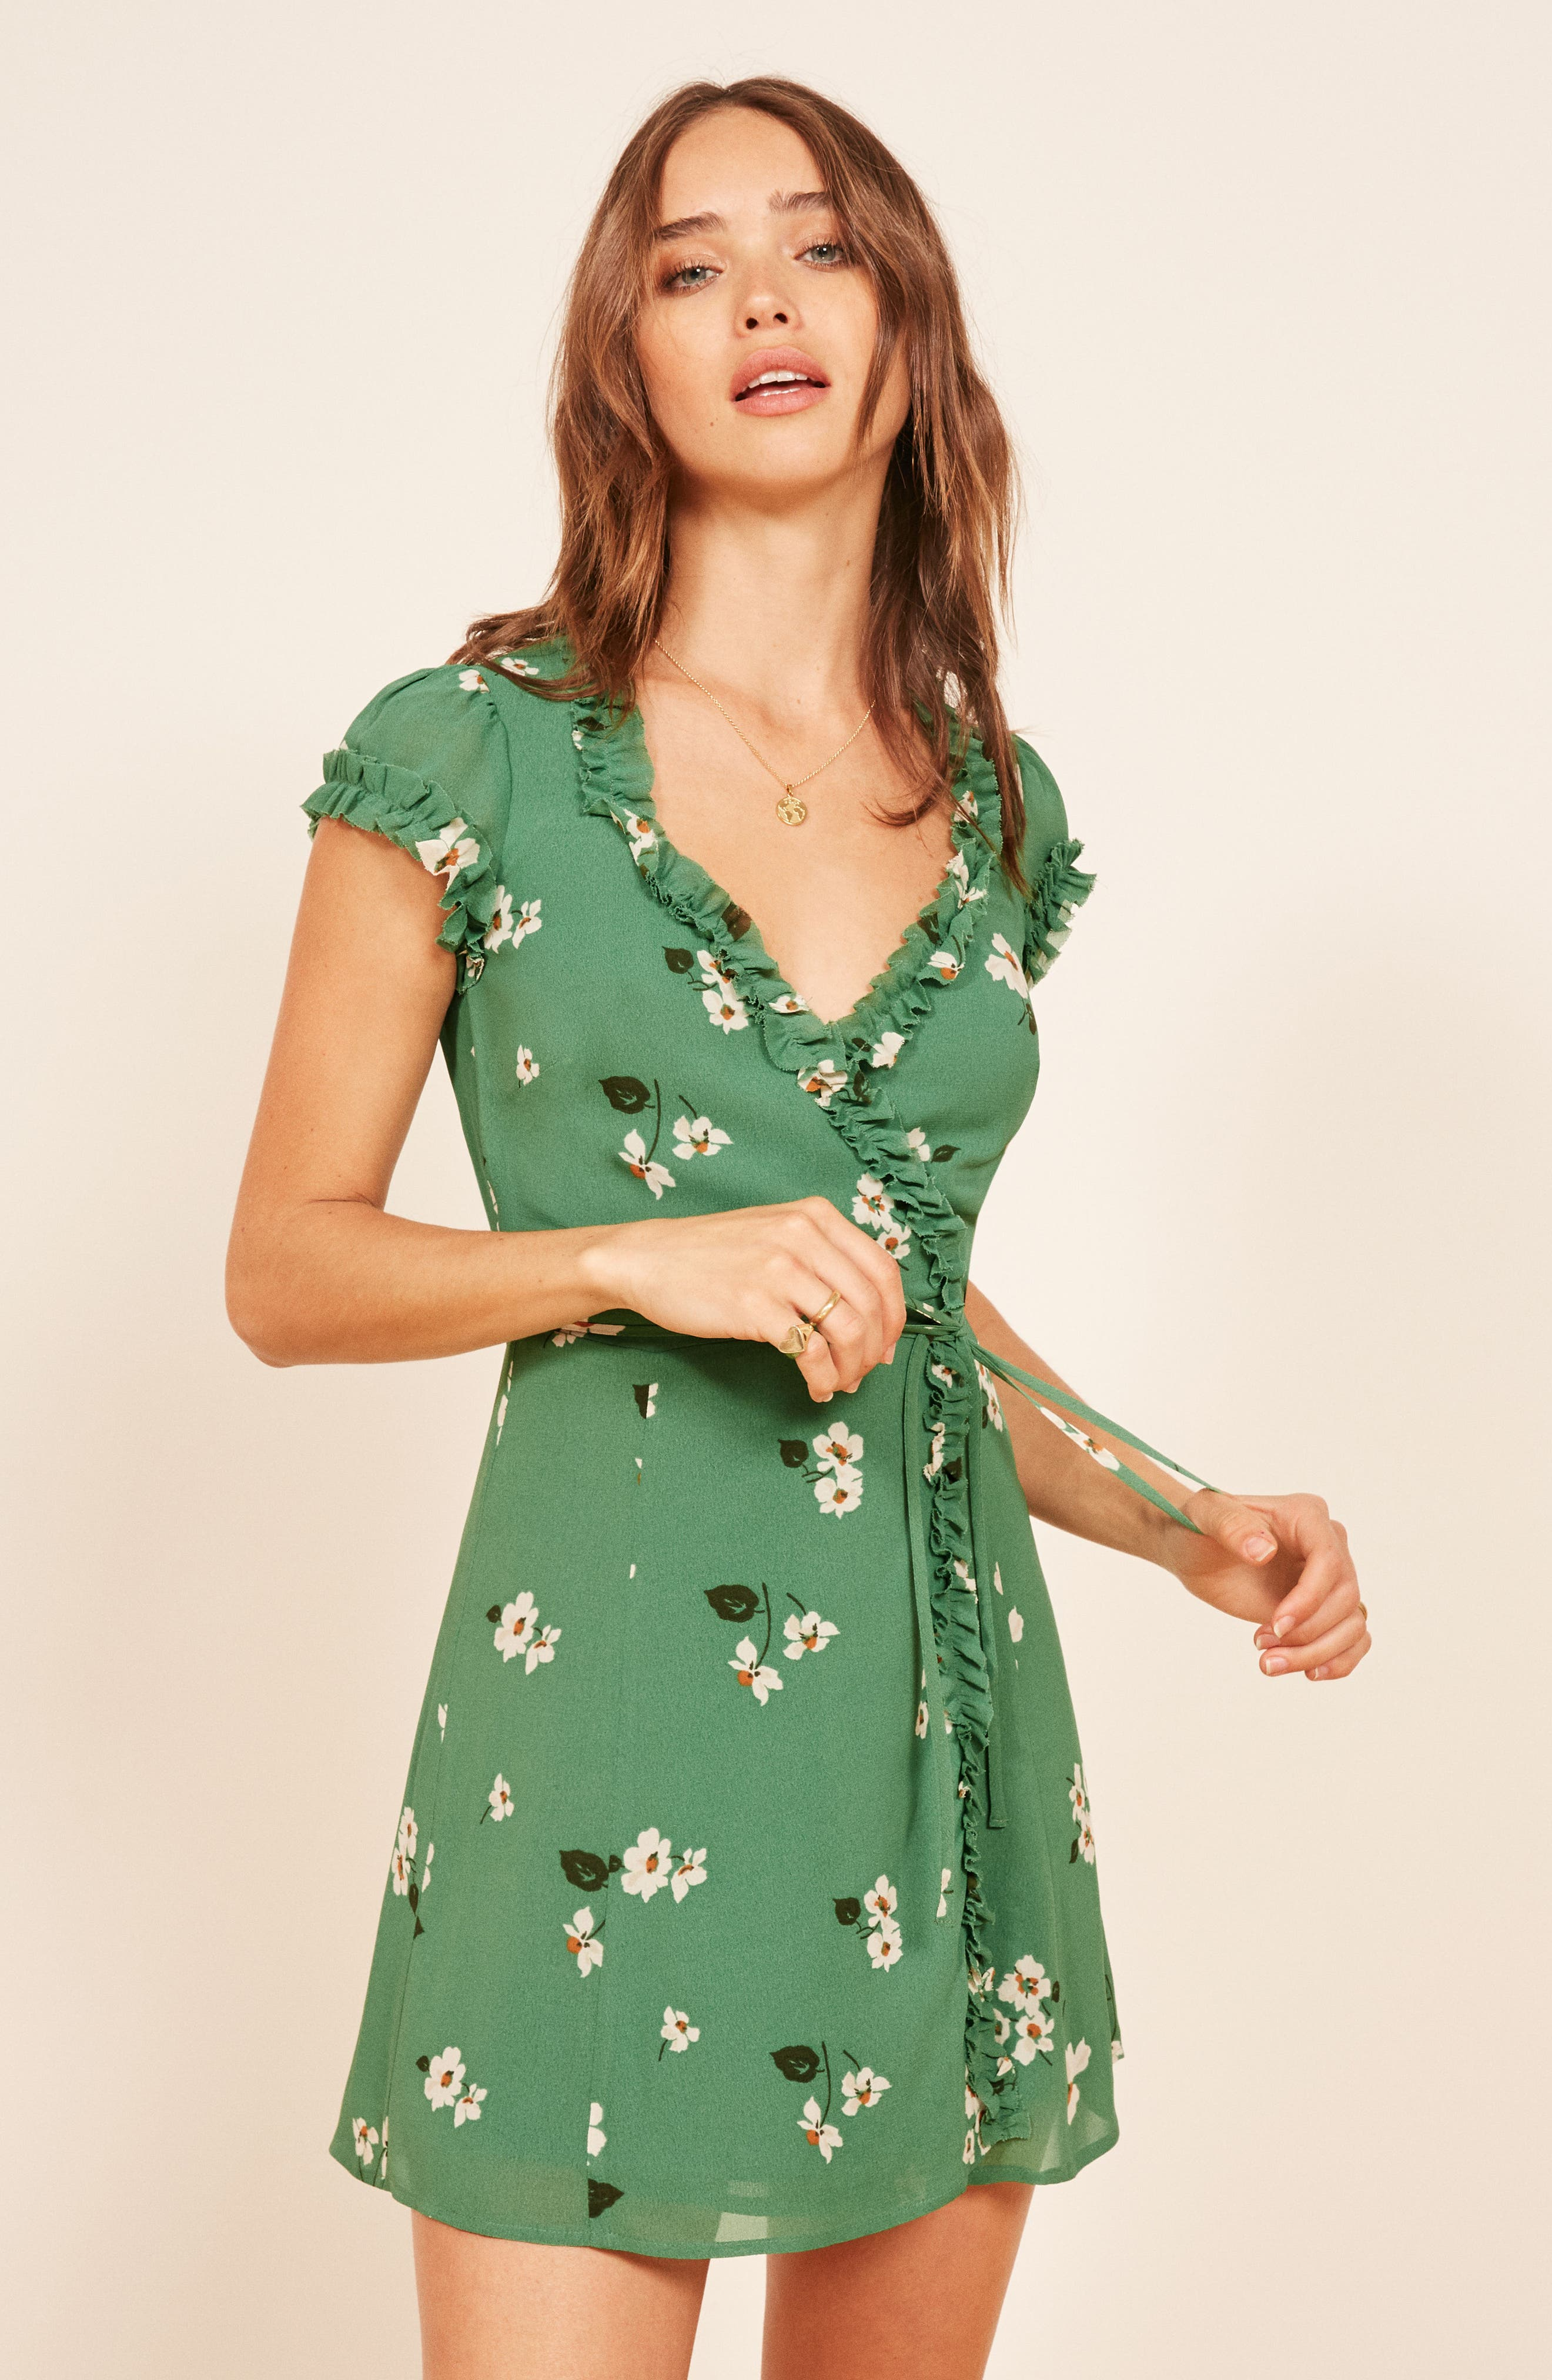 Garnet Floral Wrap Minidress,                             Alternate thumbnail 6, color,                             300